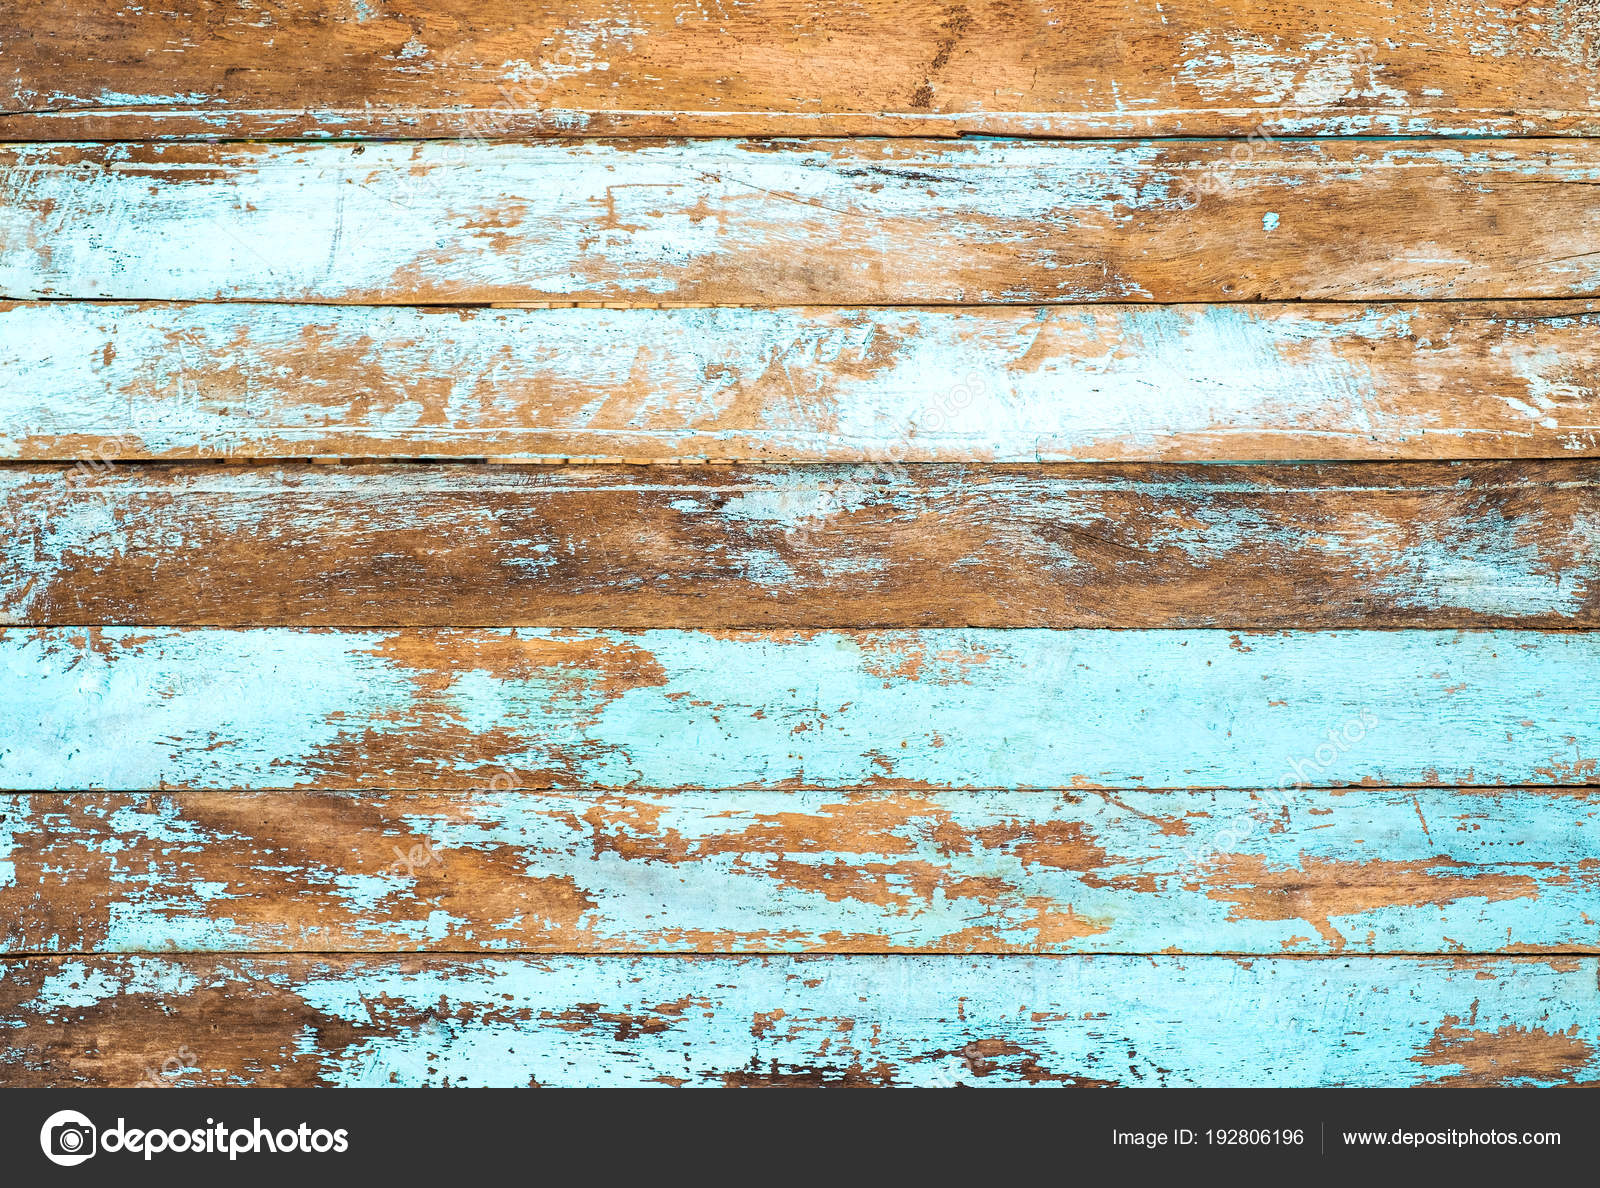 Retro Beach Wallpaper 500 489: Vintage Beach Wood Background Old Weathered Wooden Plank